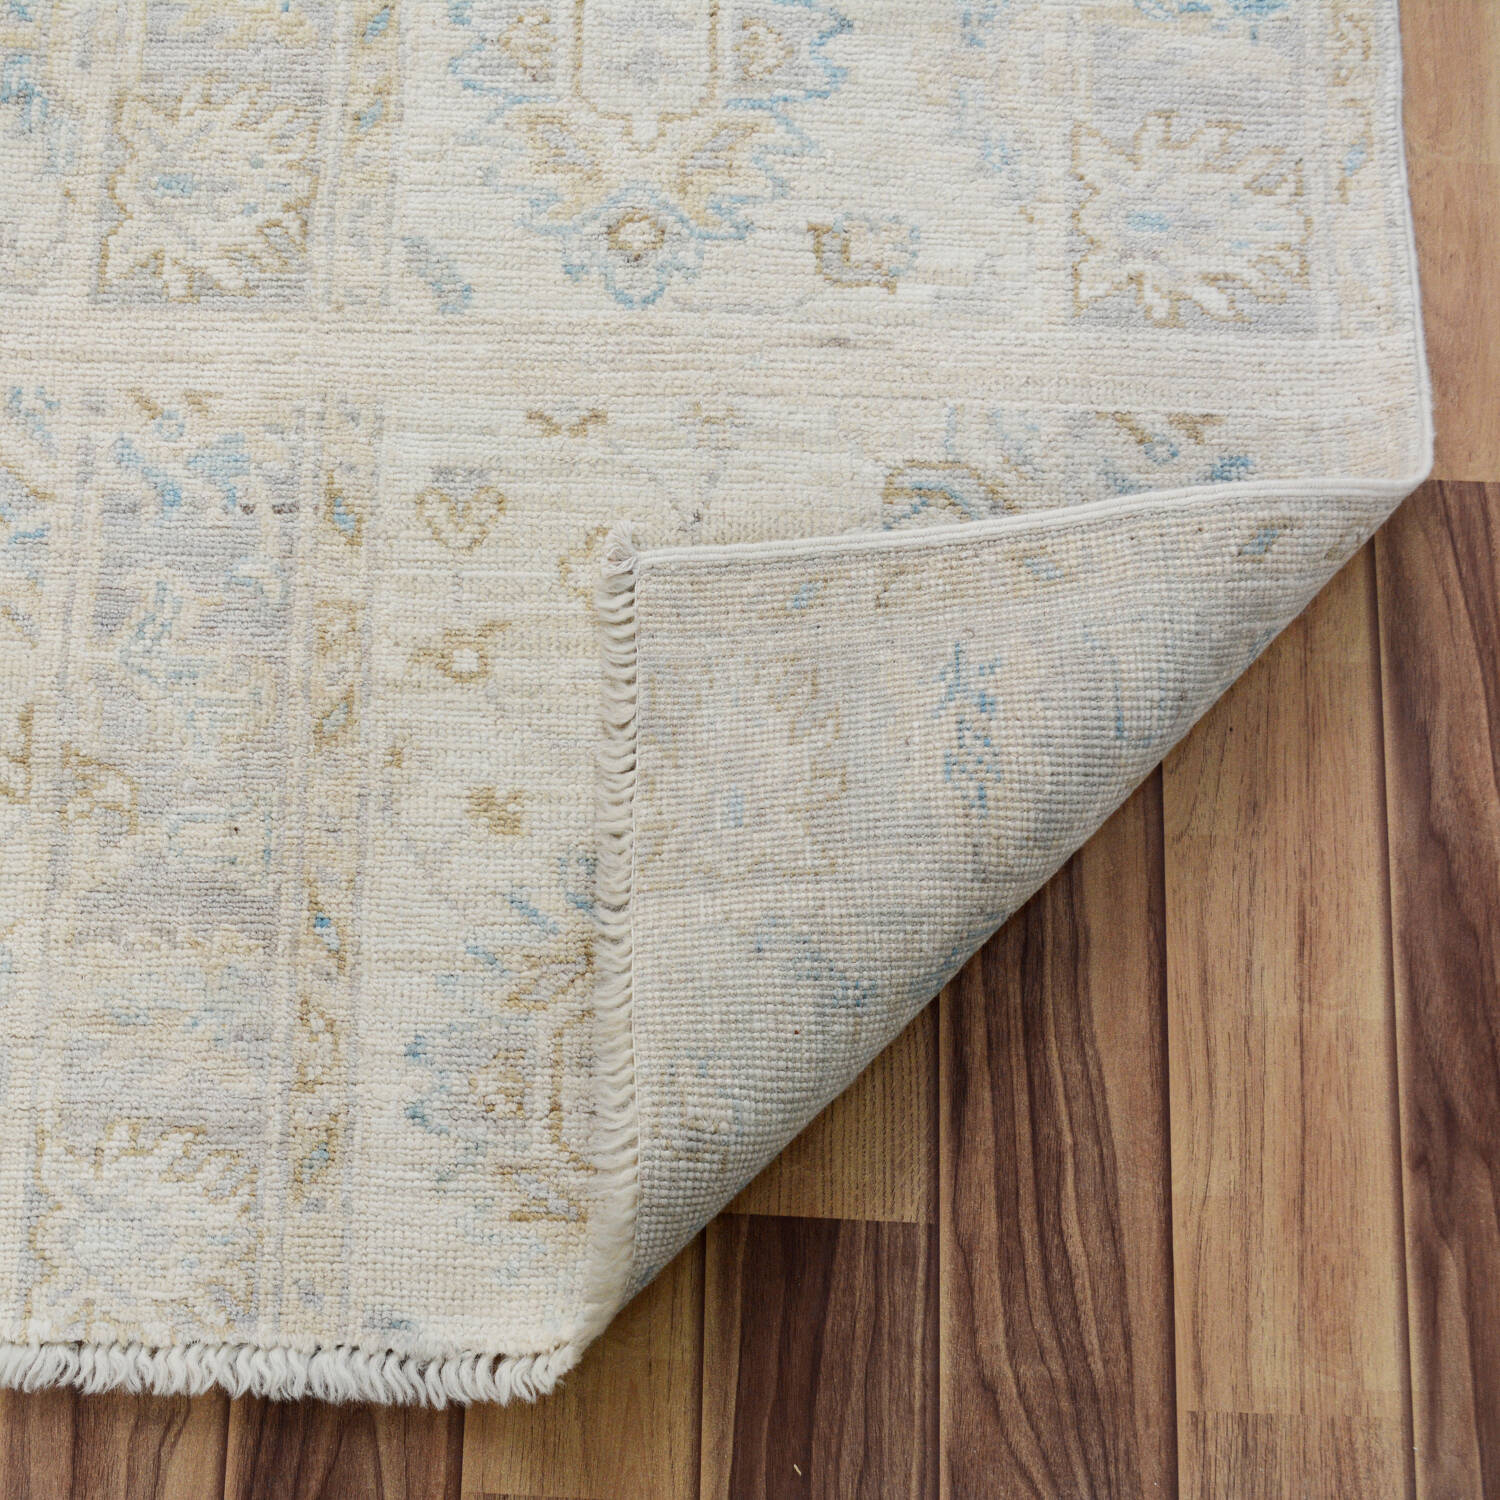 Muted Floral Oushak Turkish Area Rug 5x6 image 6